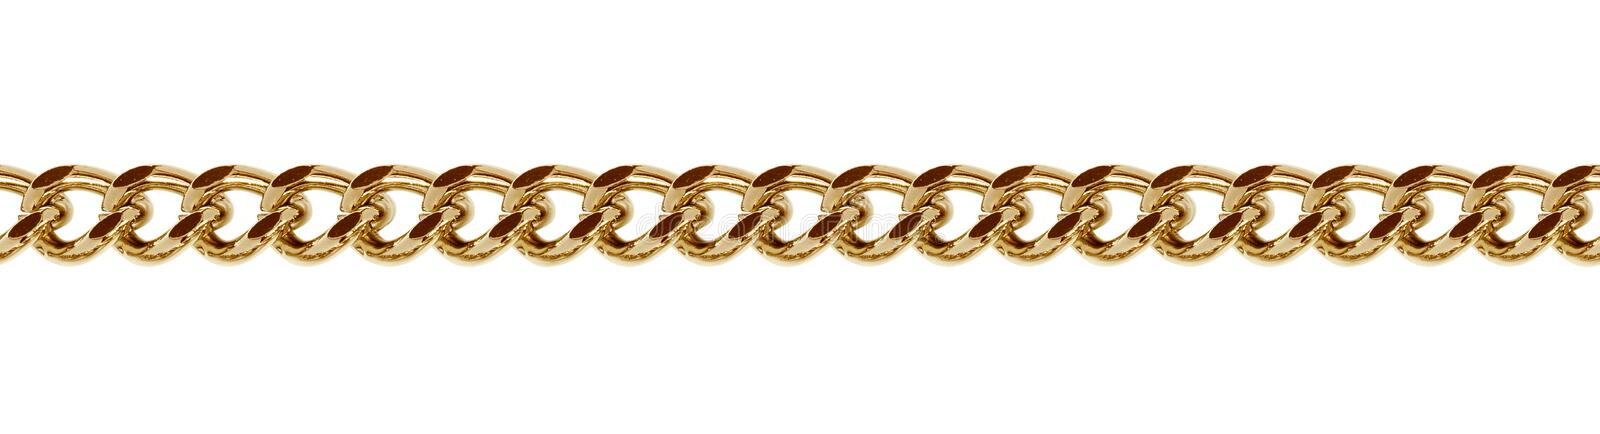 Seamless golden metal chain royalty free stock images